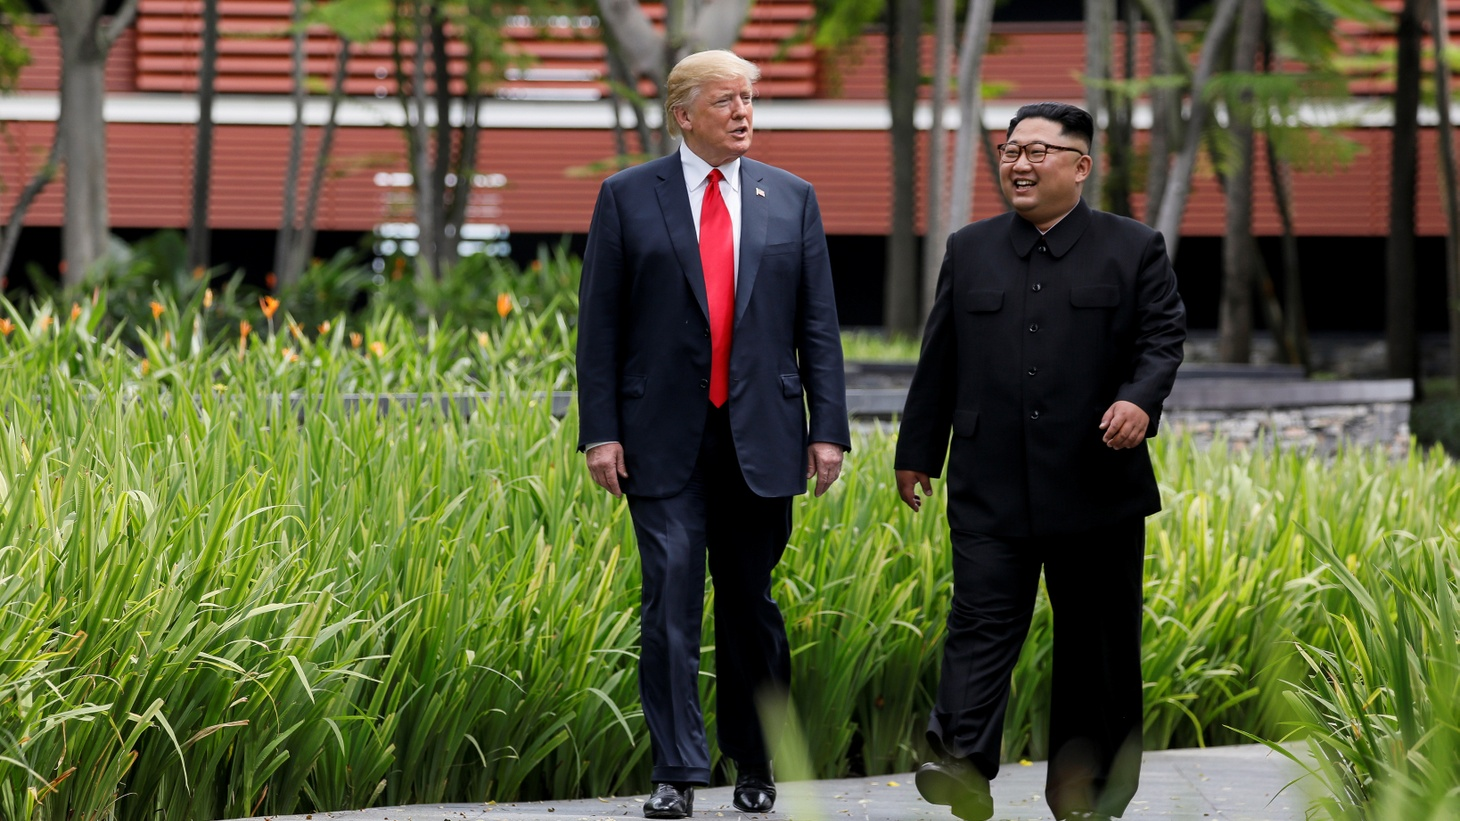 President Trump feels good about the summit and the agreement he signed with Kim Jong-Un, but does it mean anything?